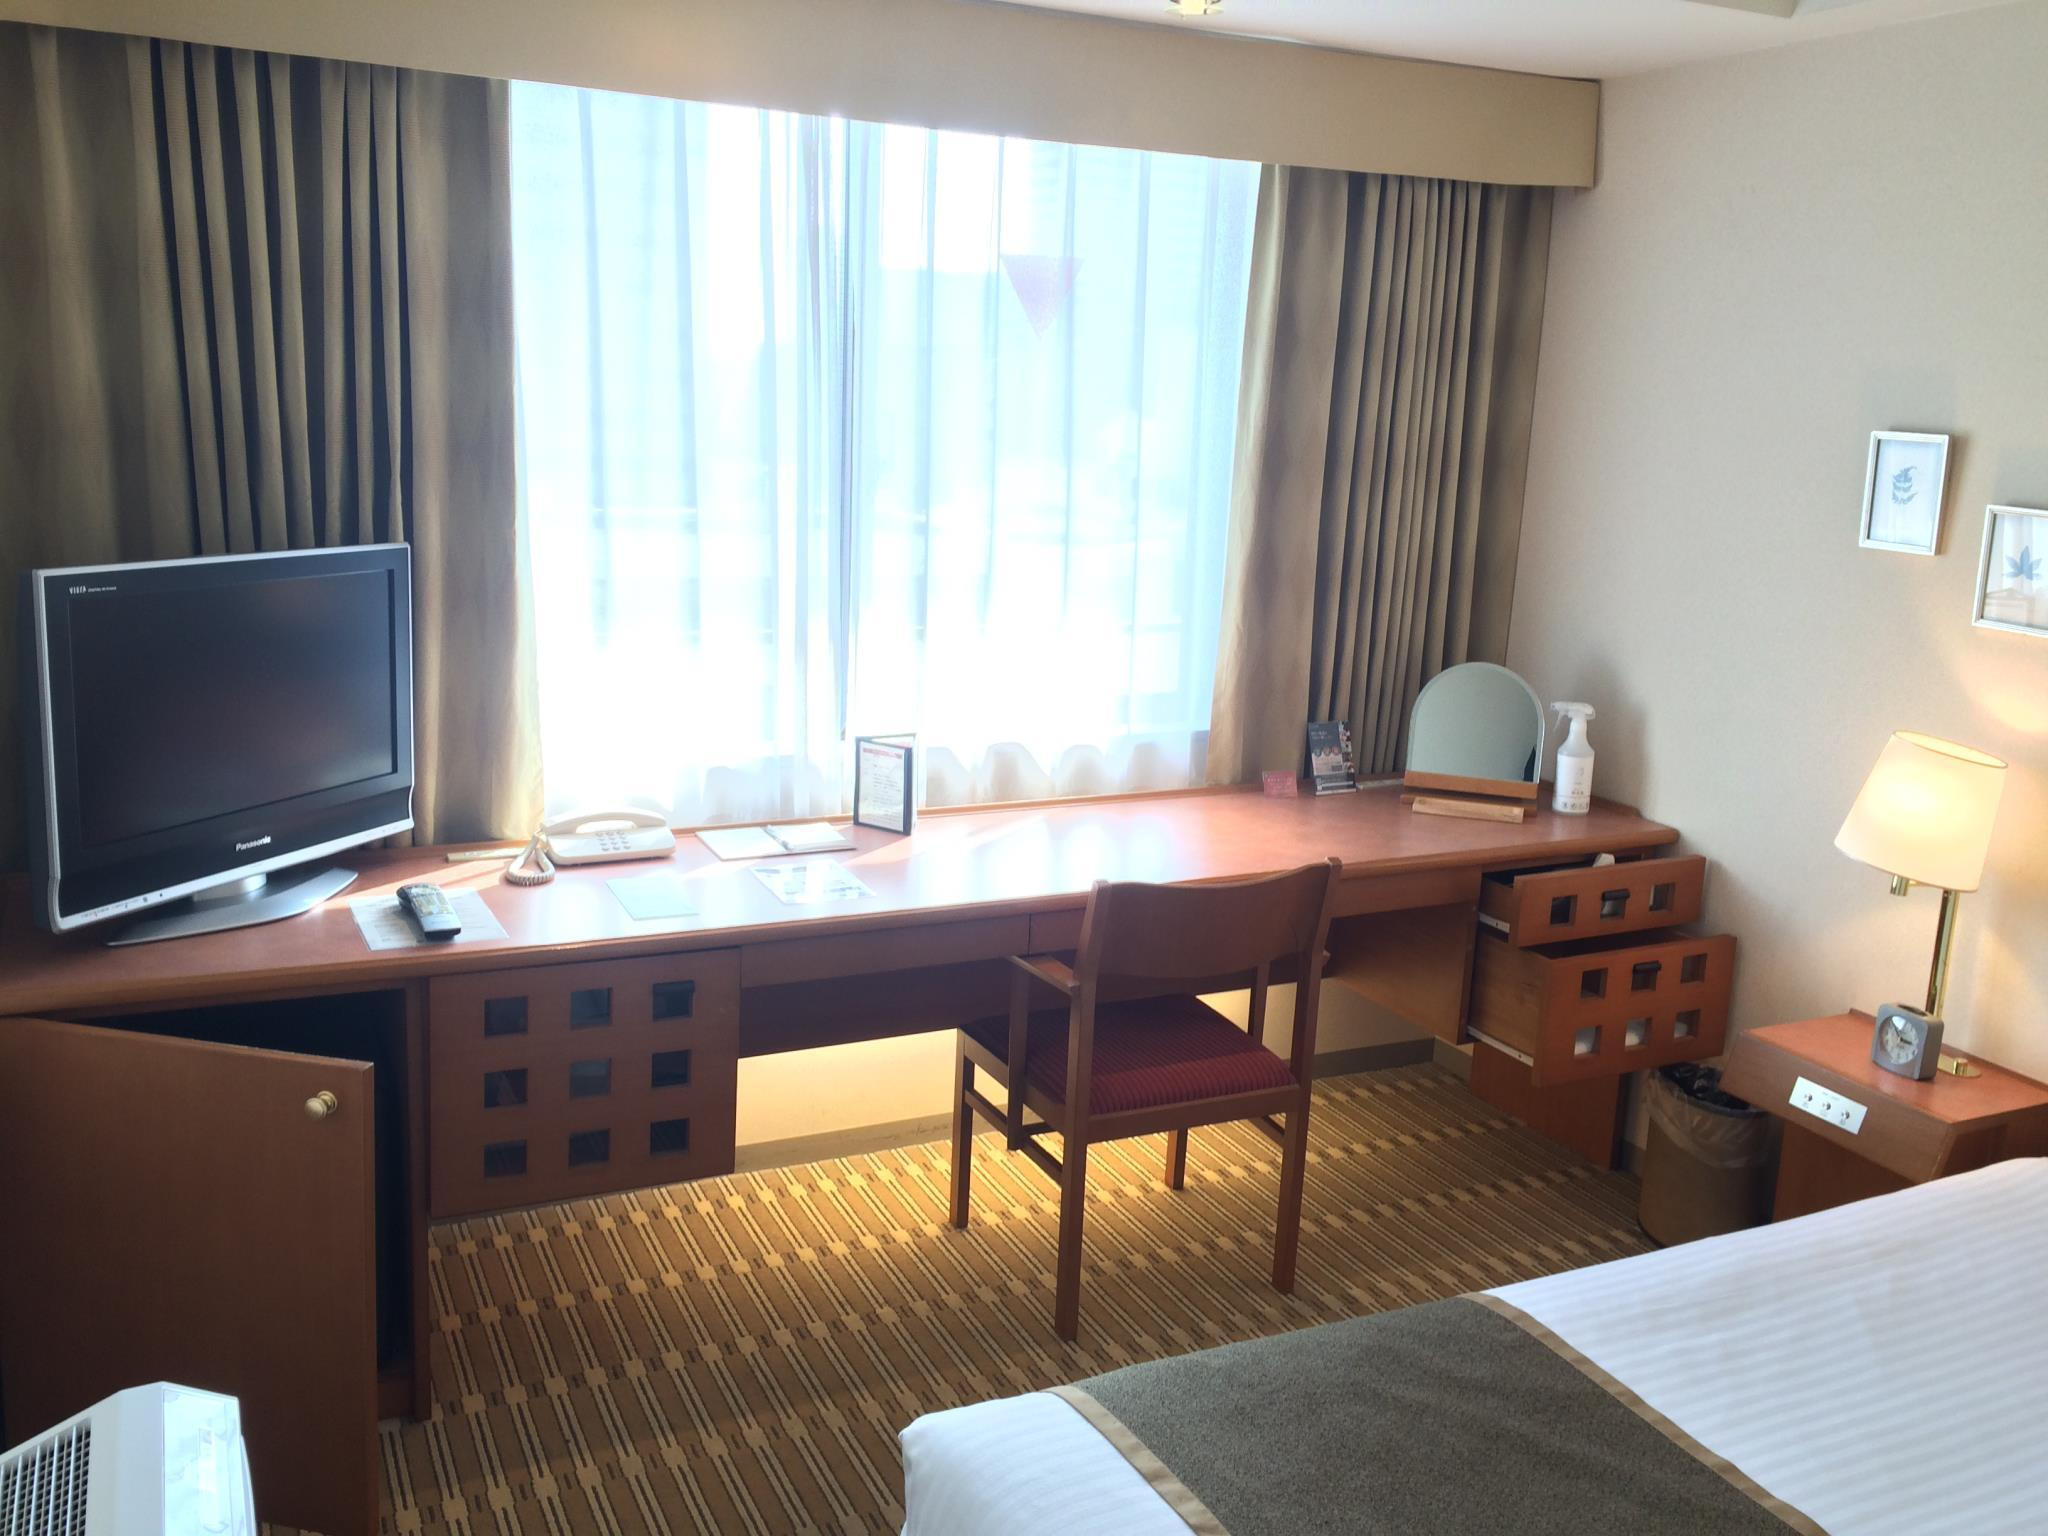 经济双人间 - 含早餐 - 禁烟 (Economy Double Room with Breakfast - Non-Smoking)